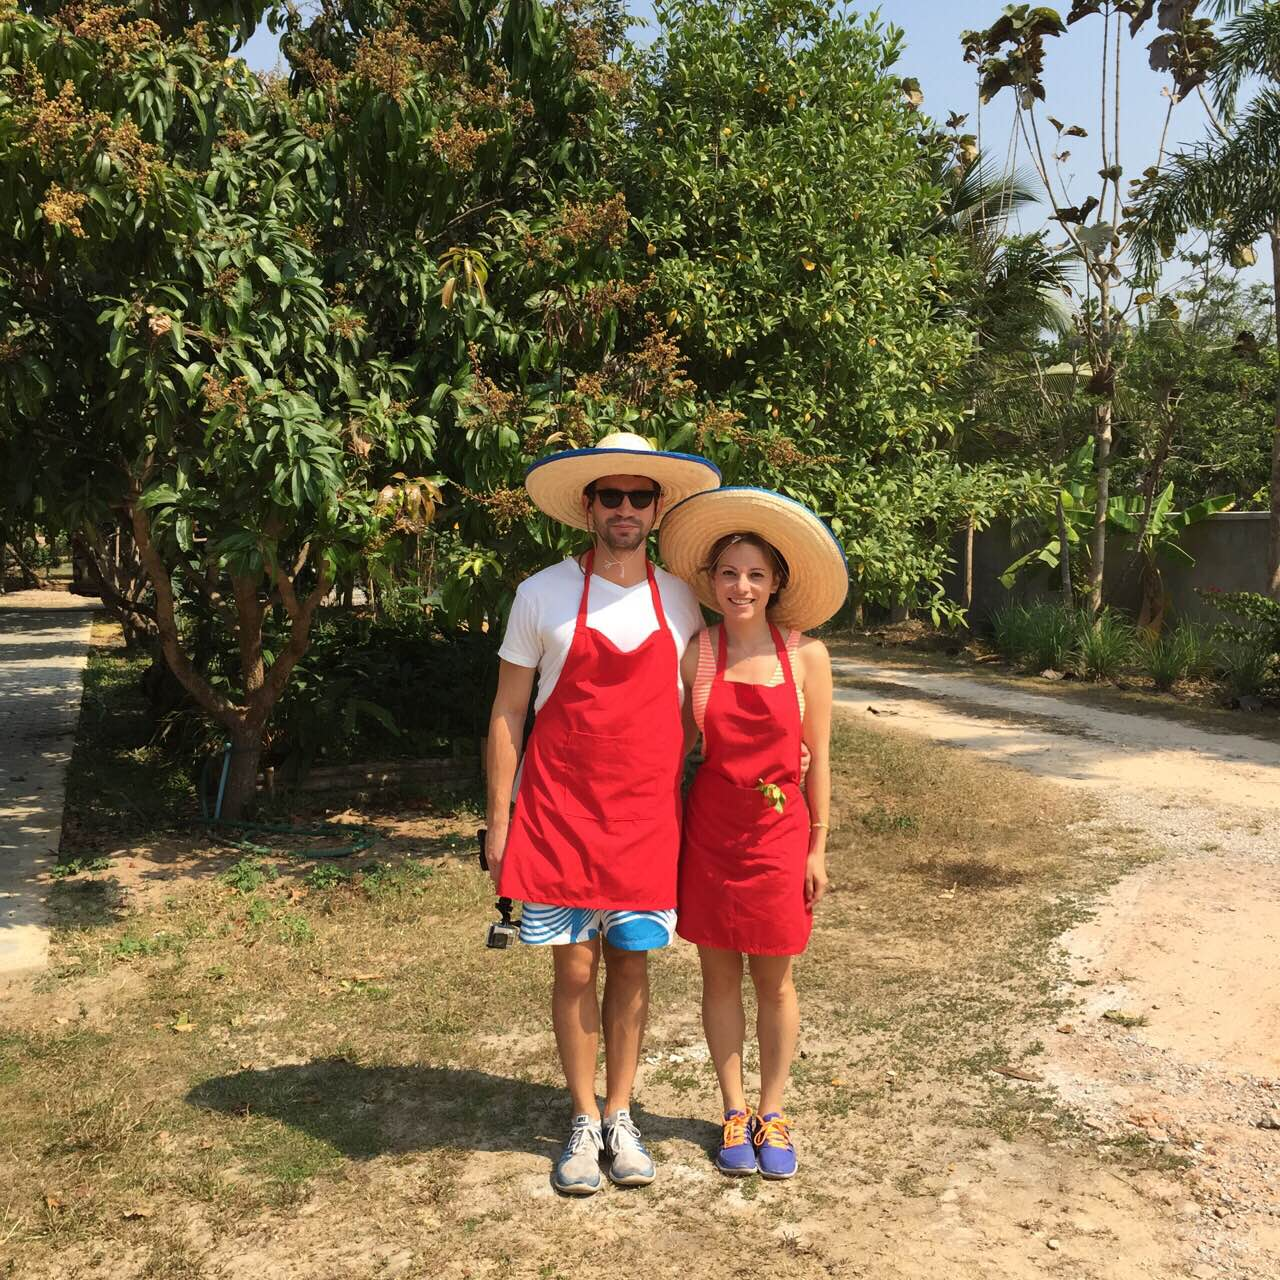 Thai cooking attire; red aprons and sombreros.